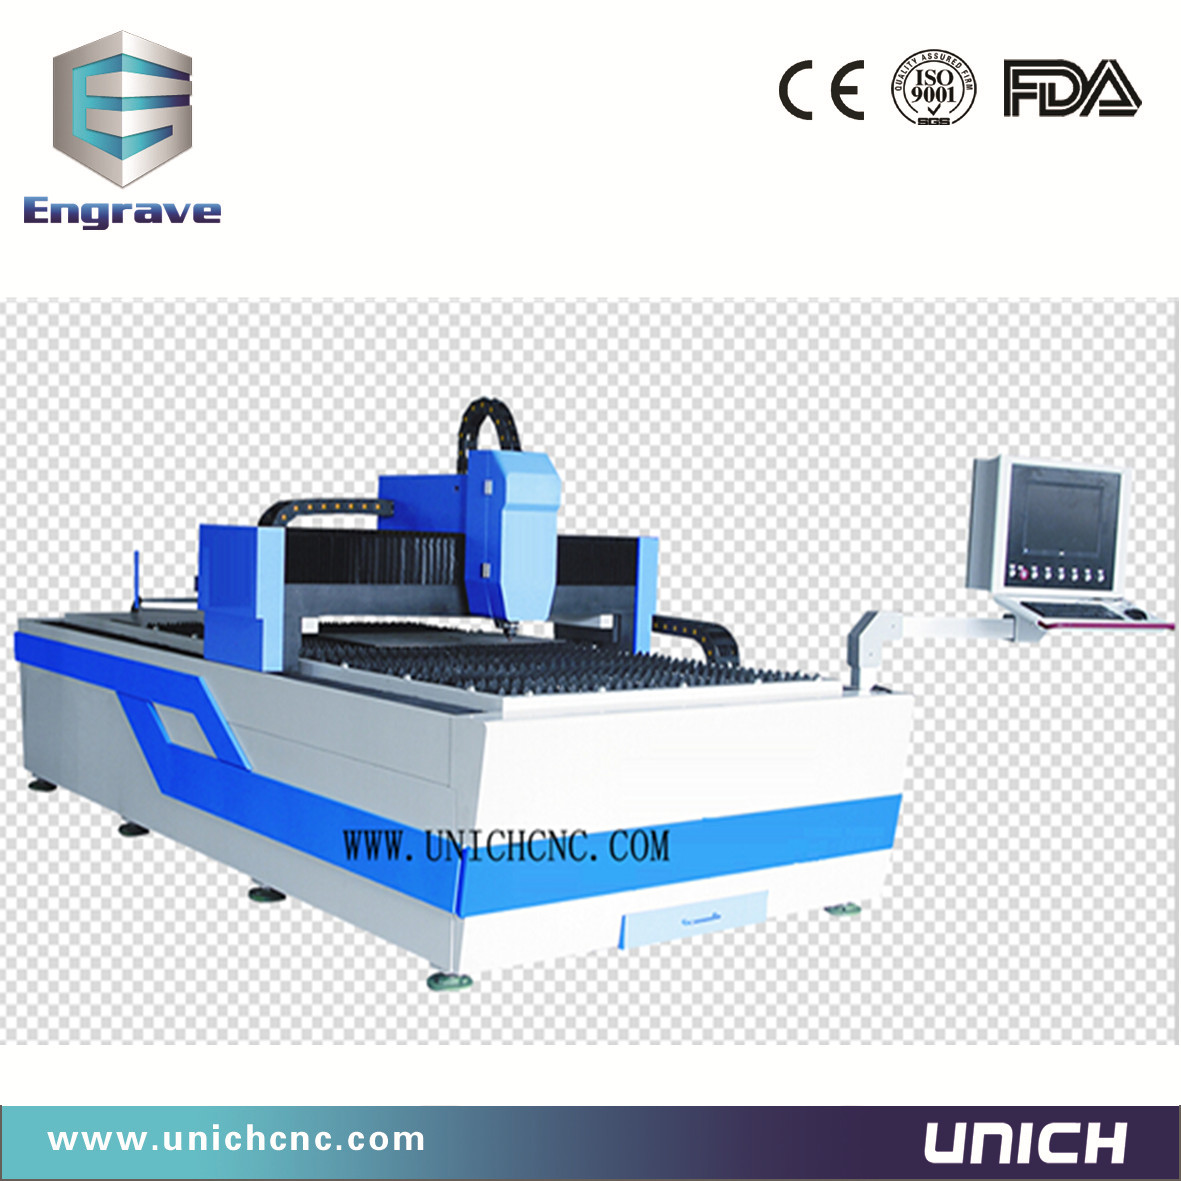 Very Good quality fiber laser cutting machine 1200W